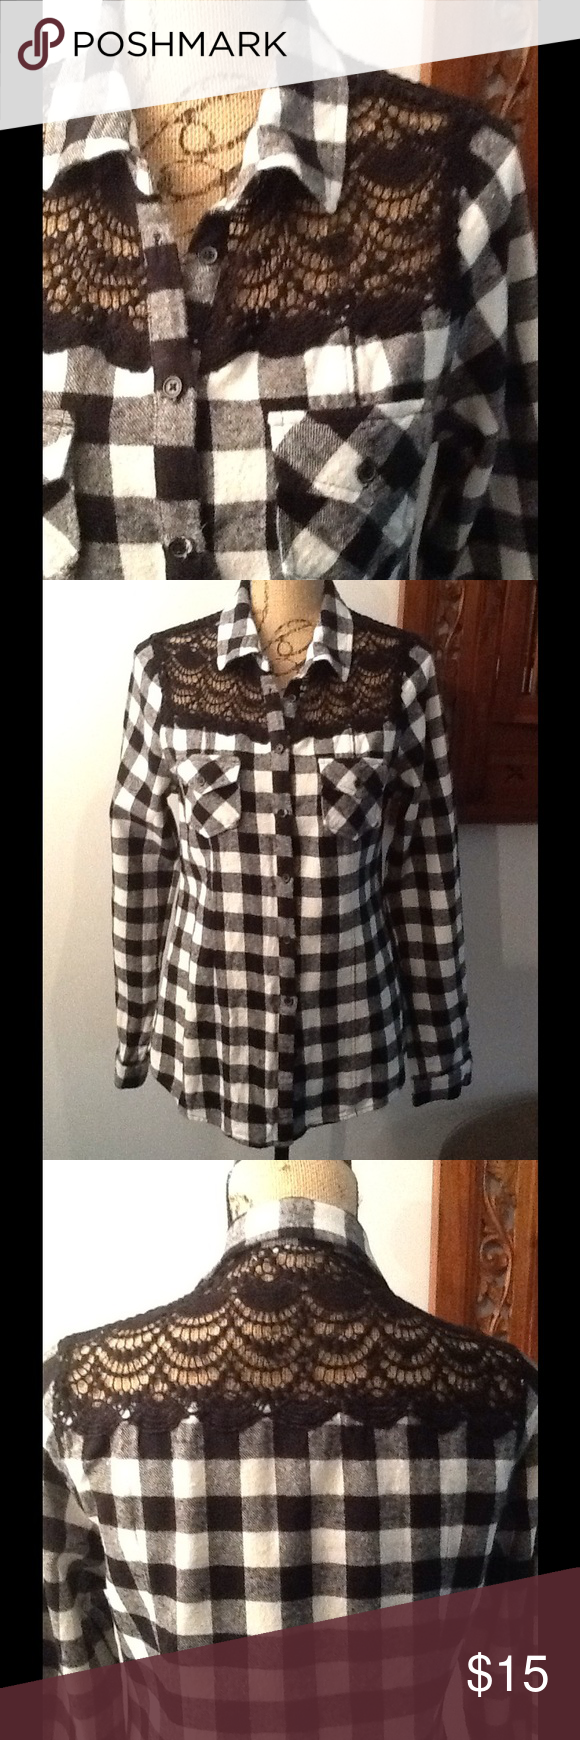 Flannel shirt black  Flannel and lace button down shirt  Lace button Flannels and Black